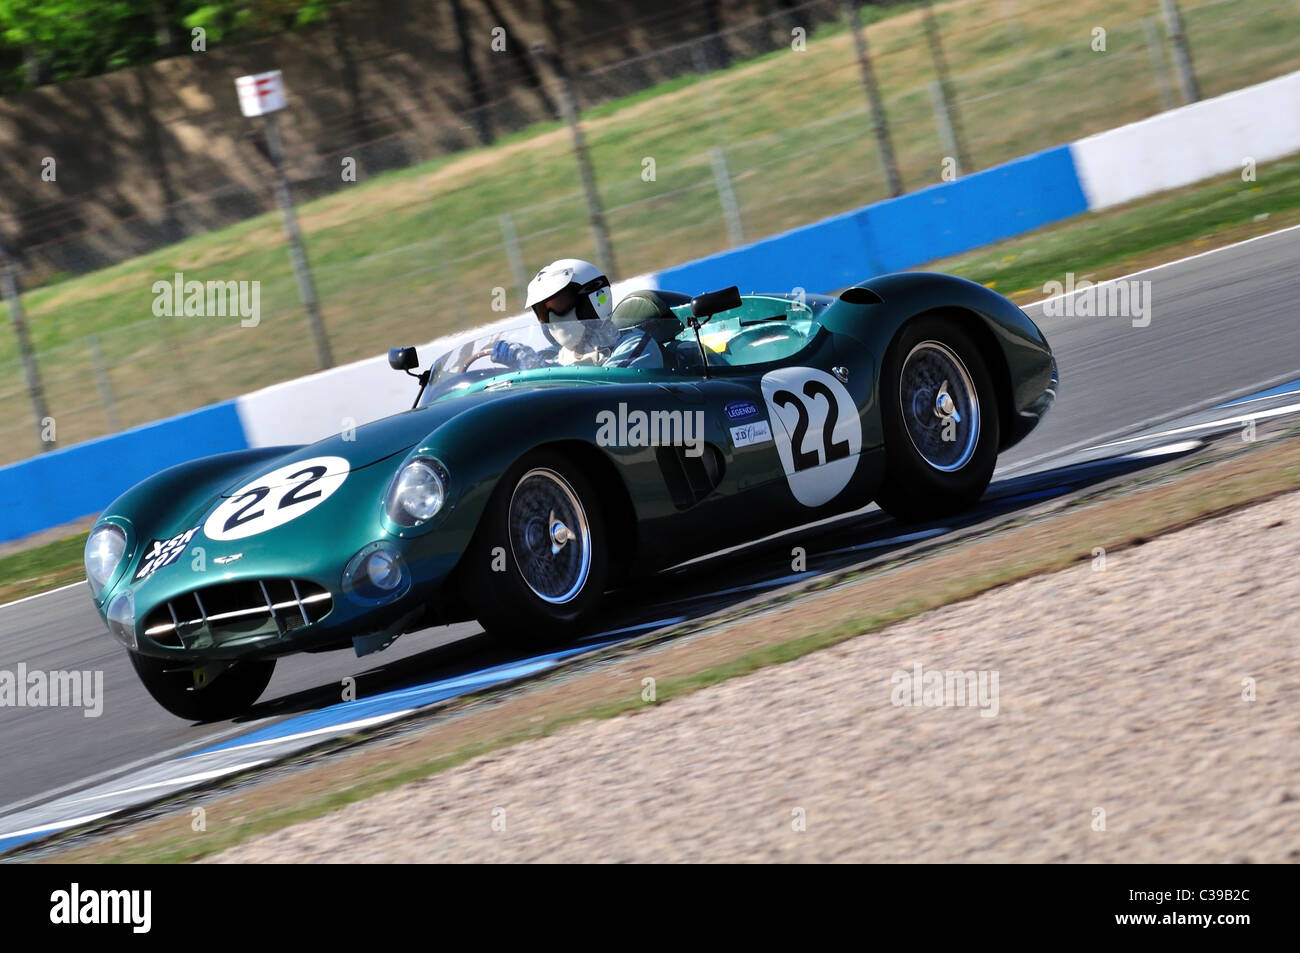 Stirling Moss Trophy for pre-'61 Sports Cars - Richard Attwood, 1957 Aston Martin DBR1 - Stock Image